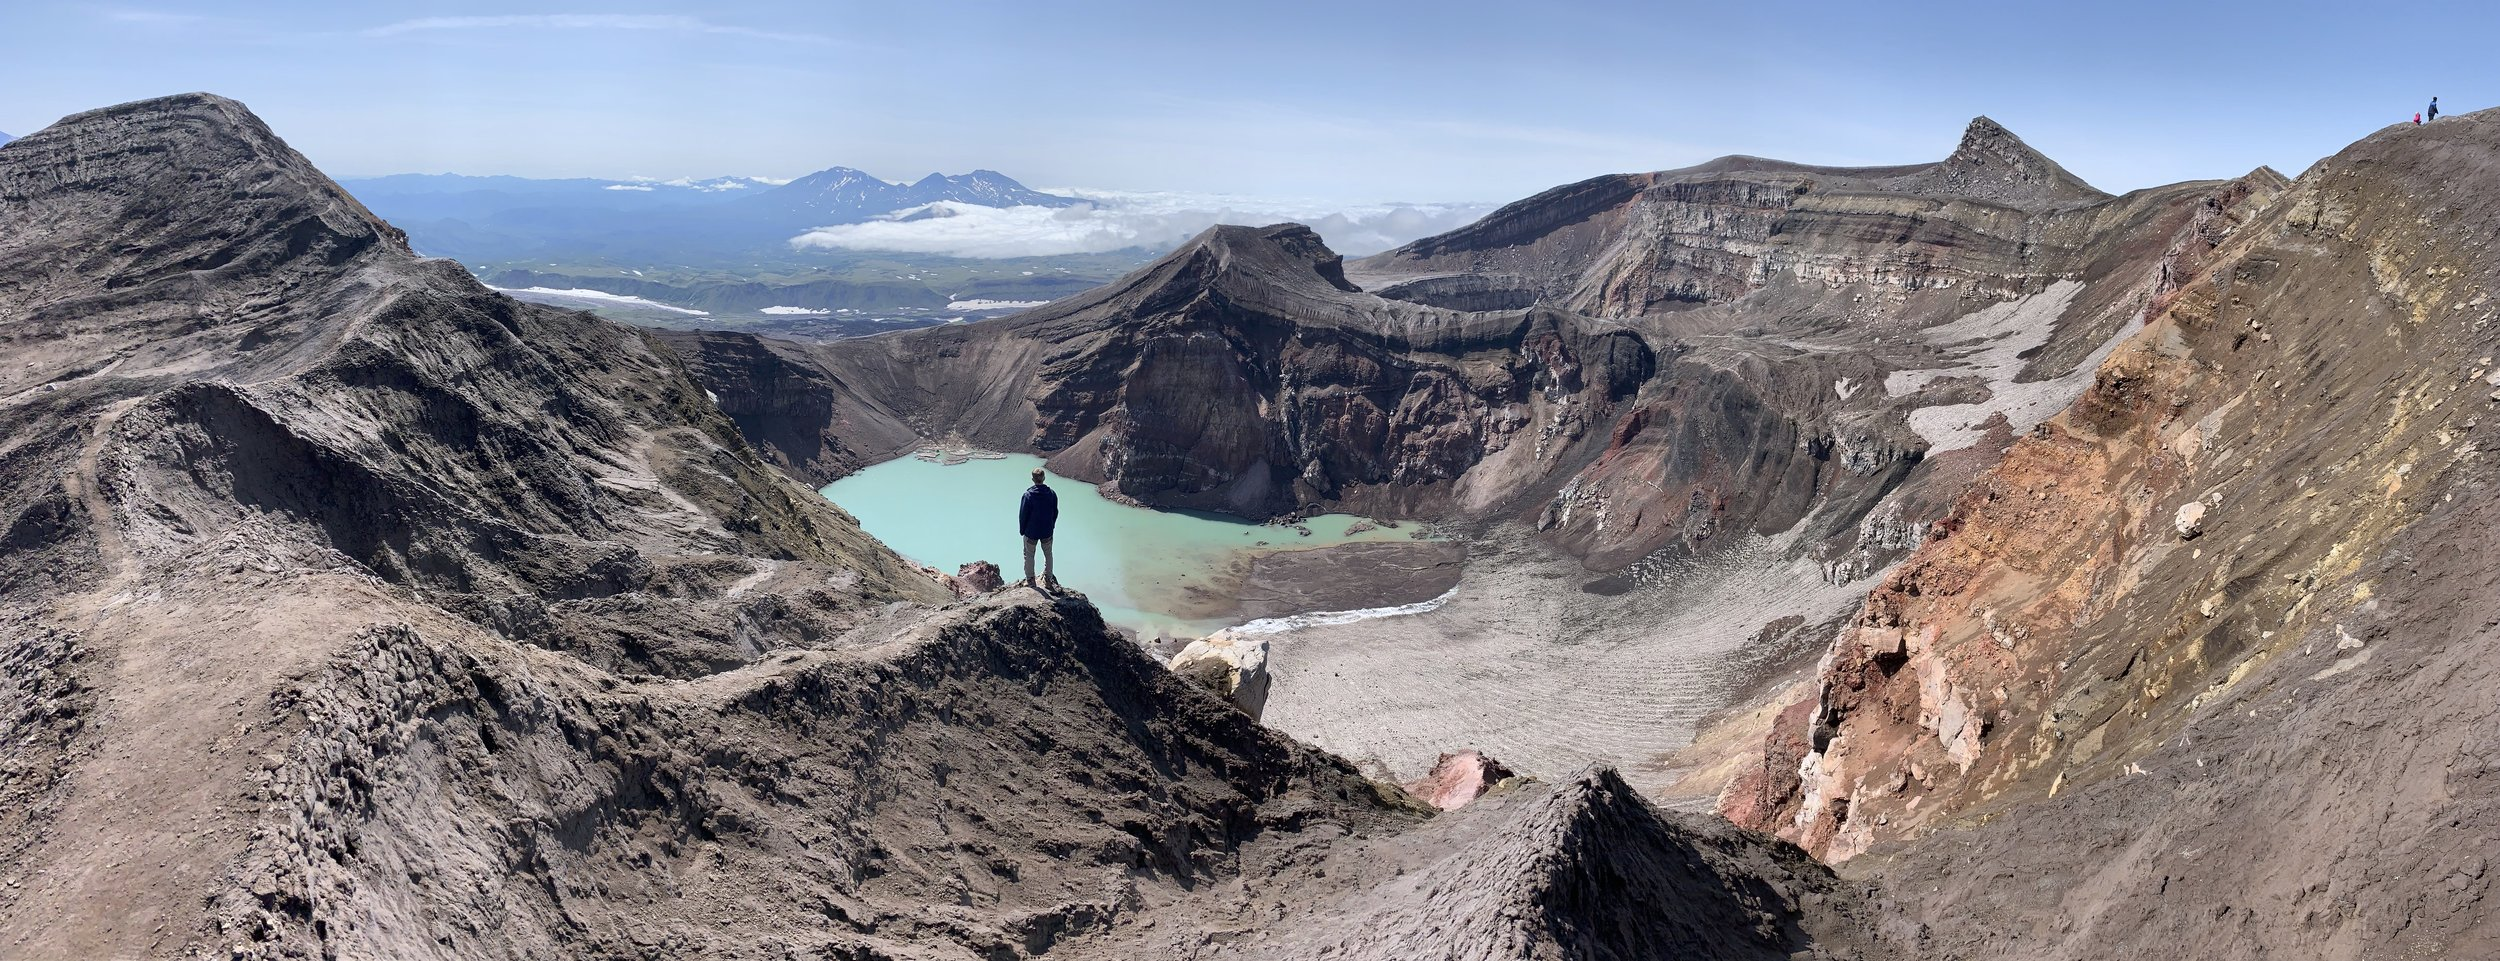 The entire main crater of the volcano is quite large and requires a few hours to traverse. It is a great hike though providing views of various craters, the surrounding plateau, and distant volcanoes.